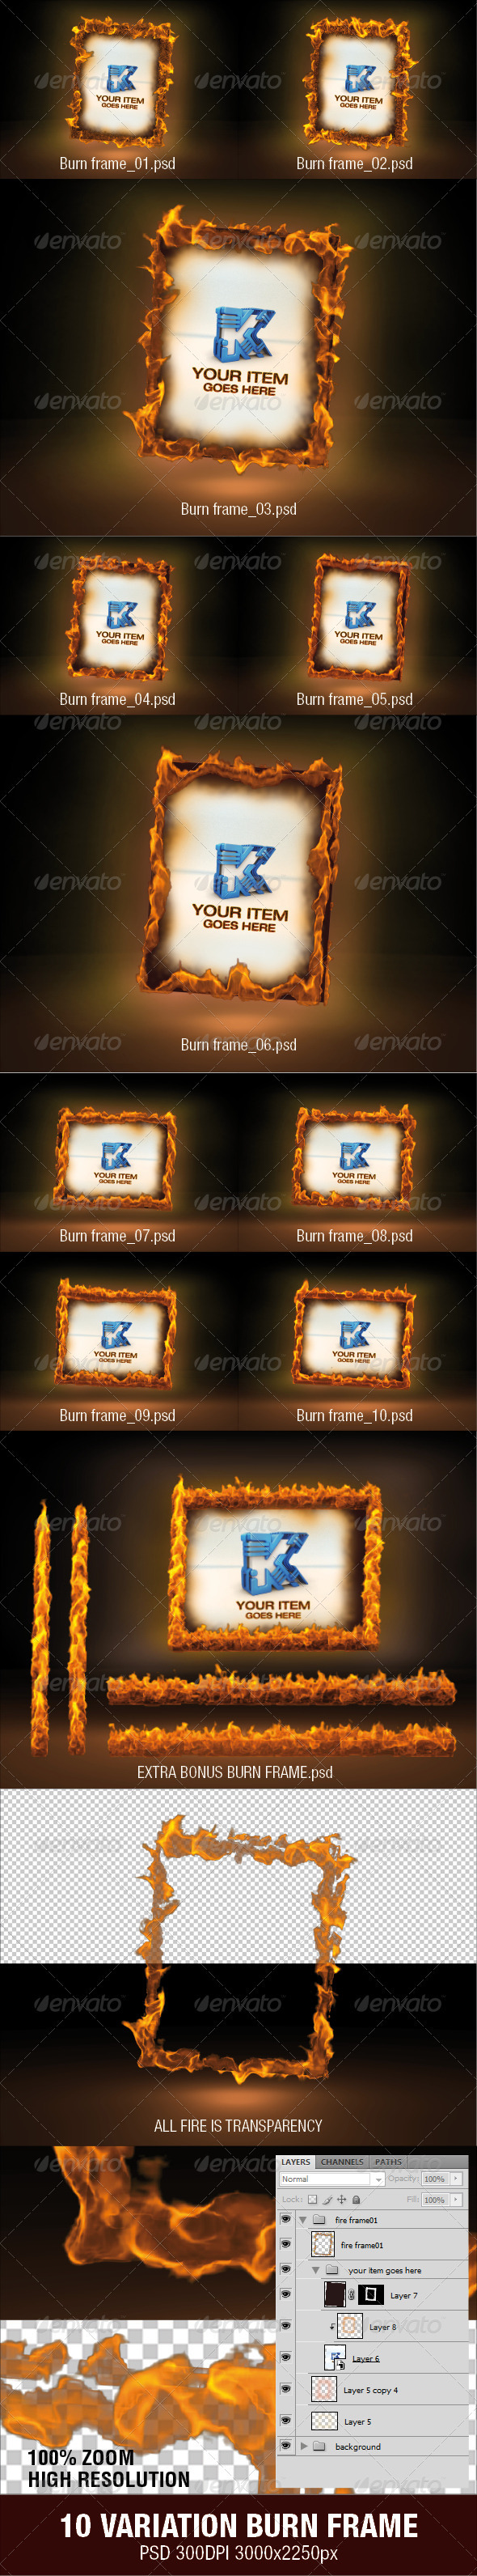 10 Variation Burn Frame - Miscellaneous Photo Templates